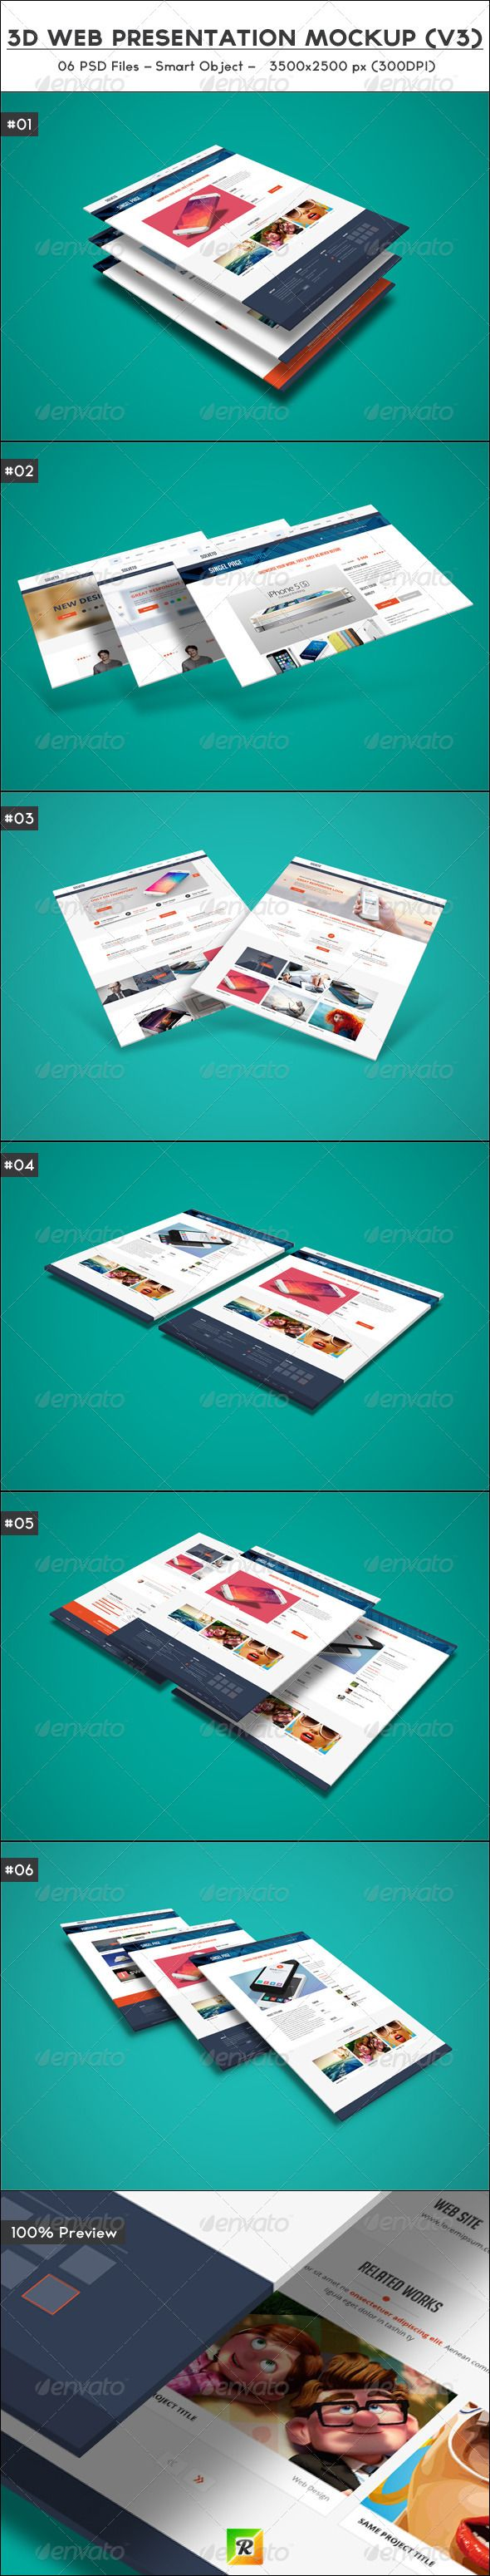 Features:  06 PSD Files Pixel Dimension: 3500×2500 Smart Object To Edit (file help included) High Resolution: 300 DPI Layered PSD File